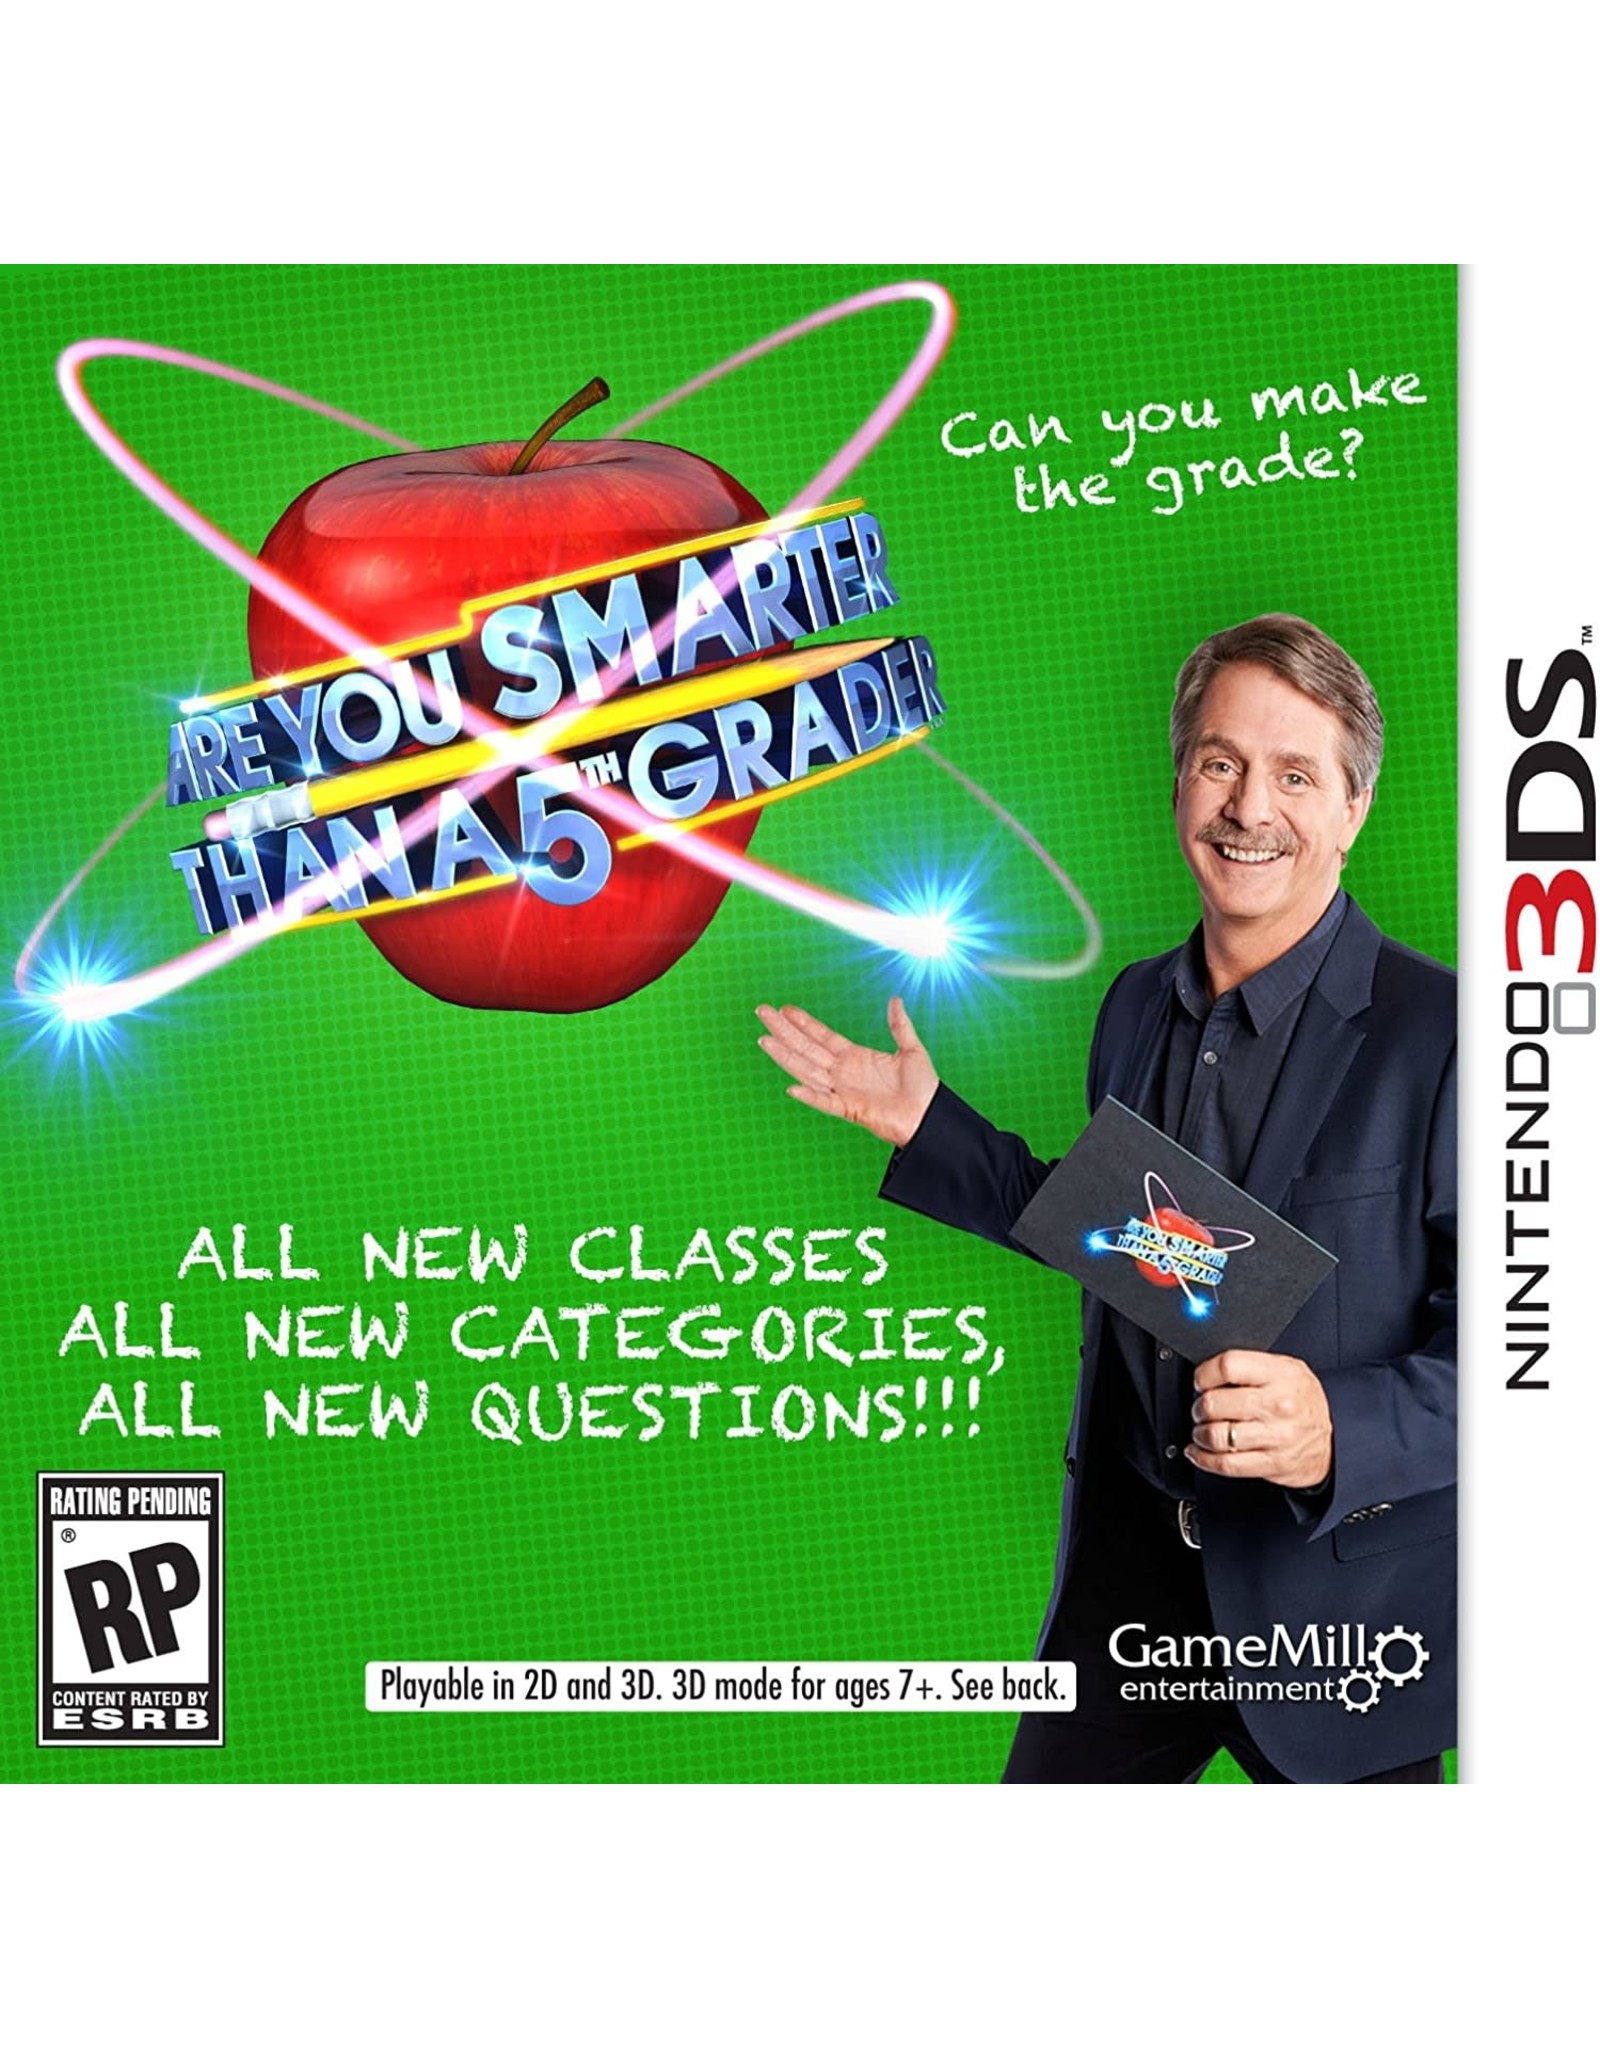 Nintendo 3DS Are You Smarter Than A 5th Grader? (Cart Only)